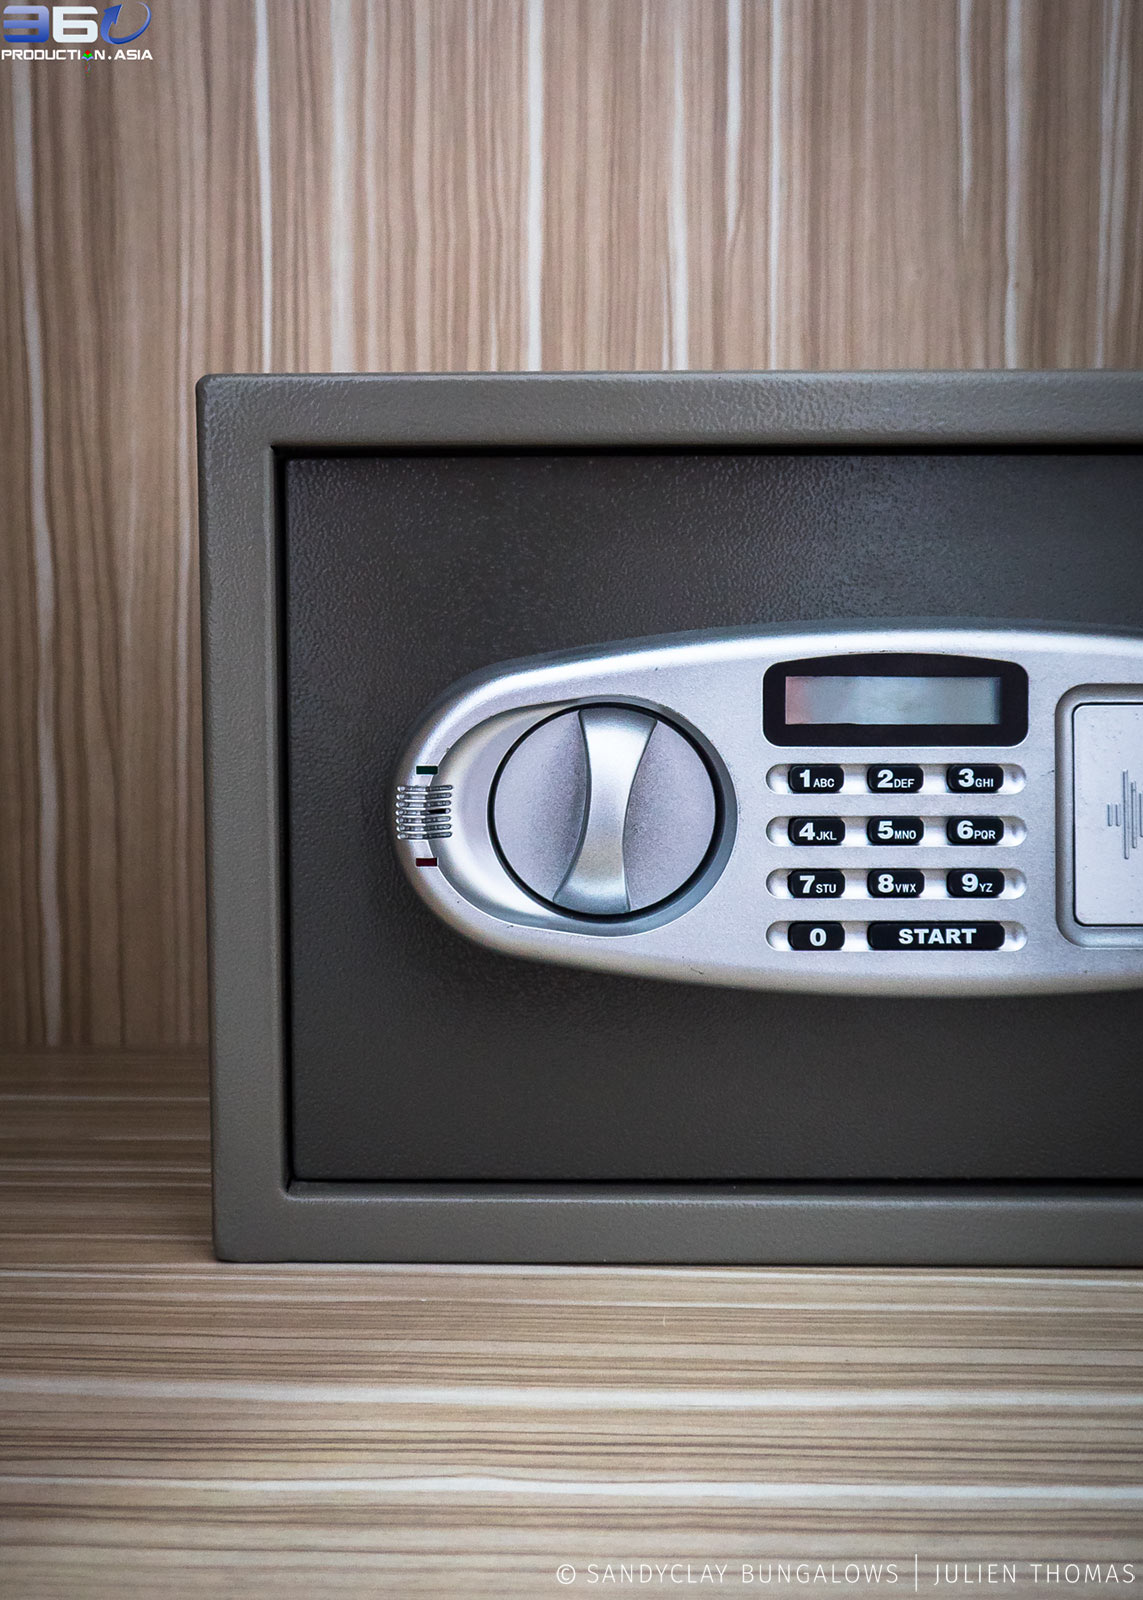 Electric small safe in the rooms for rent.